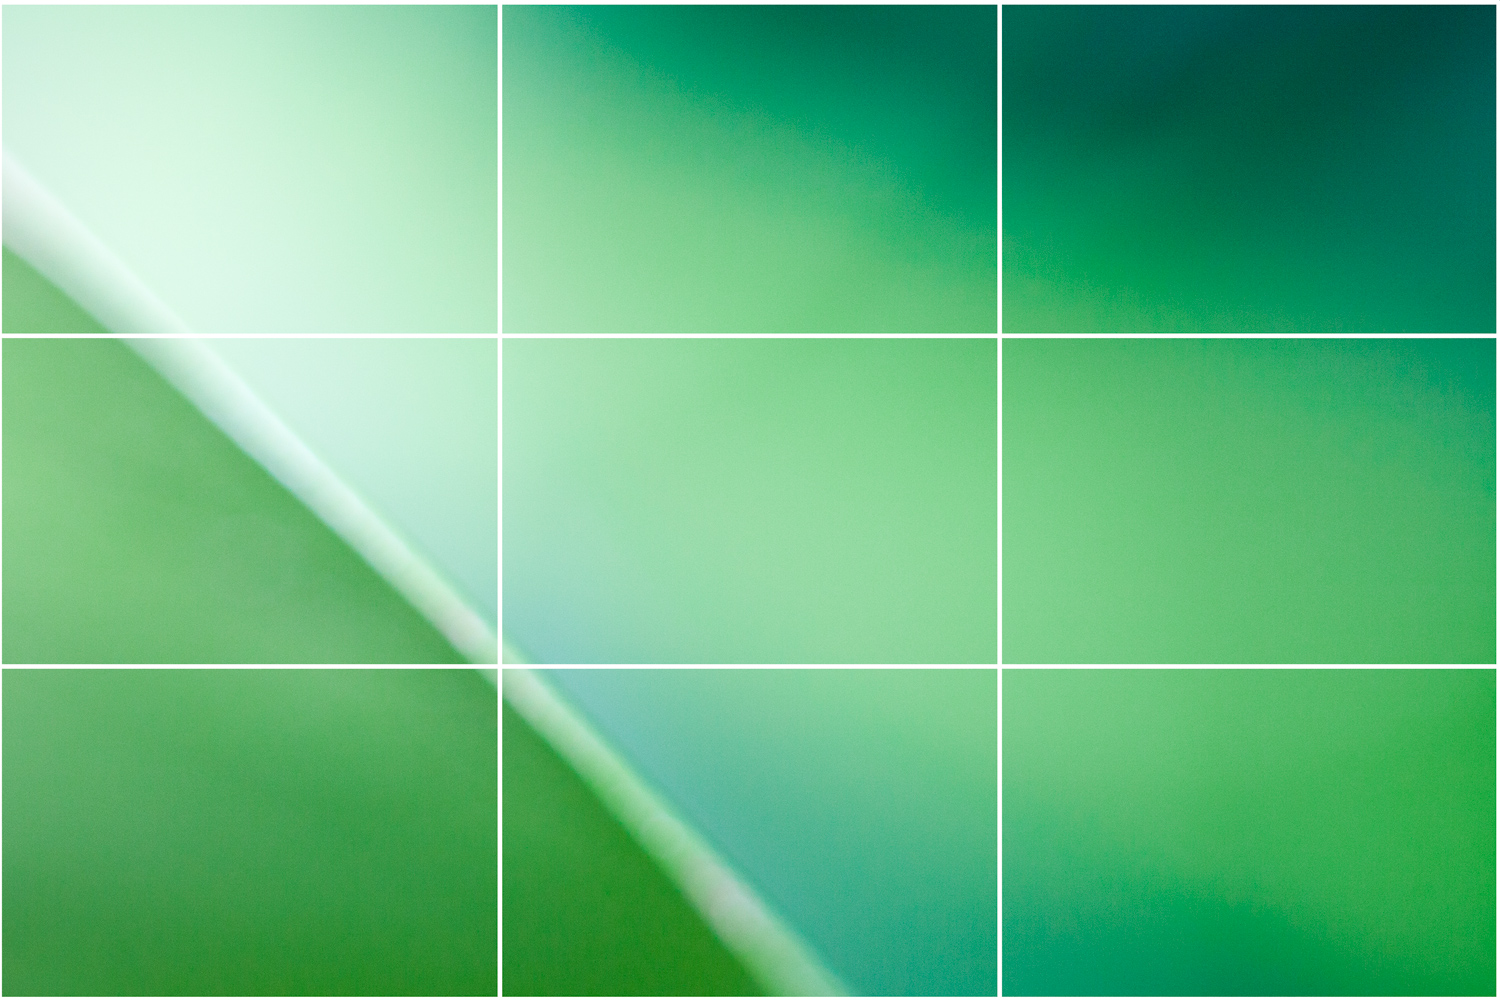 Rule of thirds examples - an abstracted image of a leaf